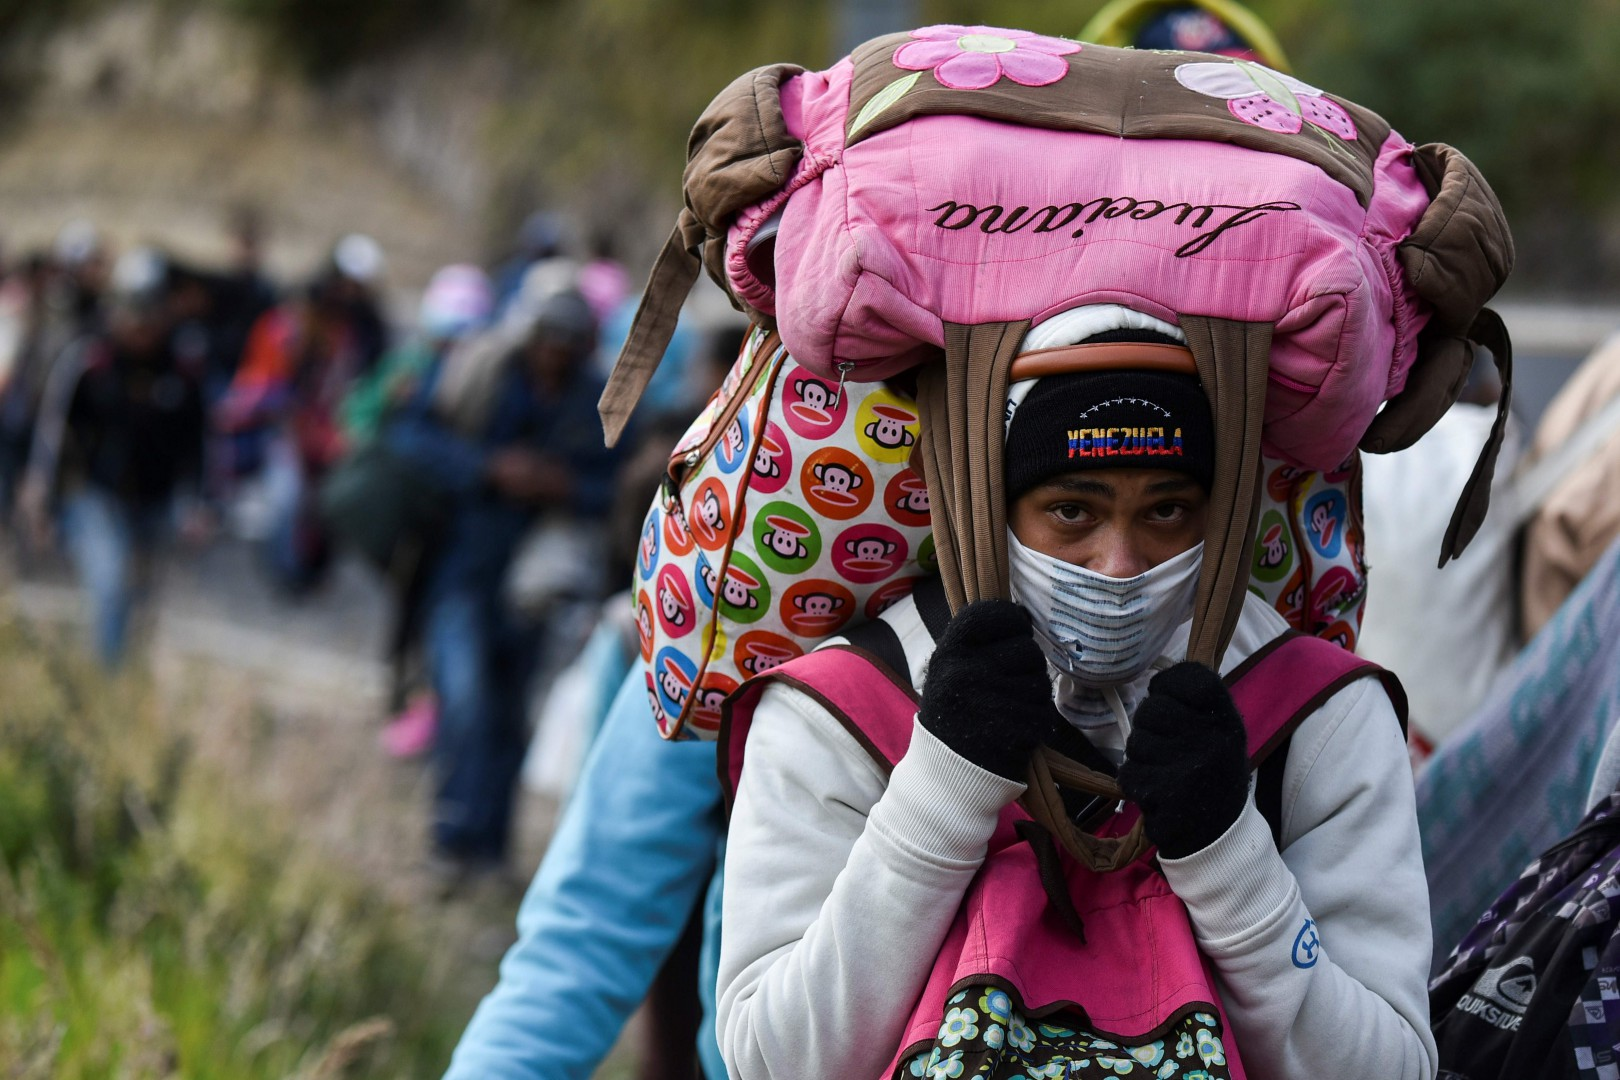 TOPSHOT - A Venezuelan migrant woman heading to Peru carries bags as she walks along the Panamerican highway in Tulcan, Ecuador, after crossing from Colombia, on August 21, 2018. - Ecuador announced on August 16 that Venezuelans entering the country would need to show passports from August 18 onwards, a document many are not carrying. And Peru followed suit on August 17, announcing an identical measure due to begin on August 25. (Photo by Luis ROBAYO / AFP)